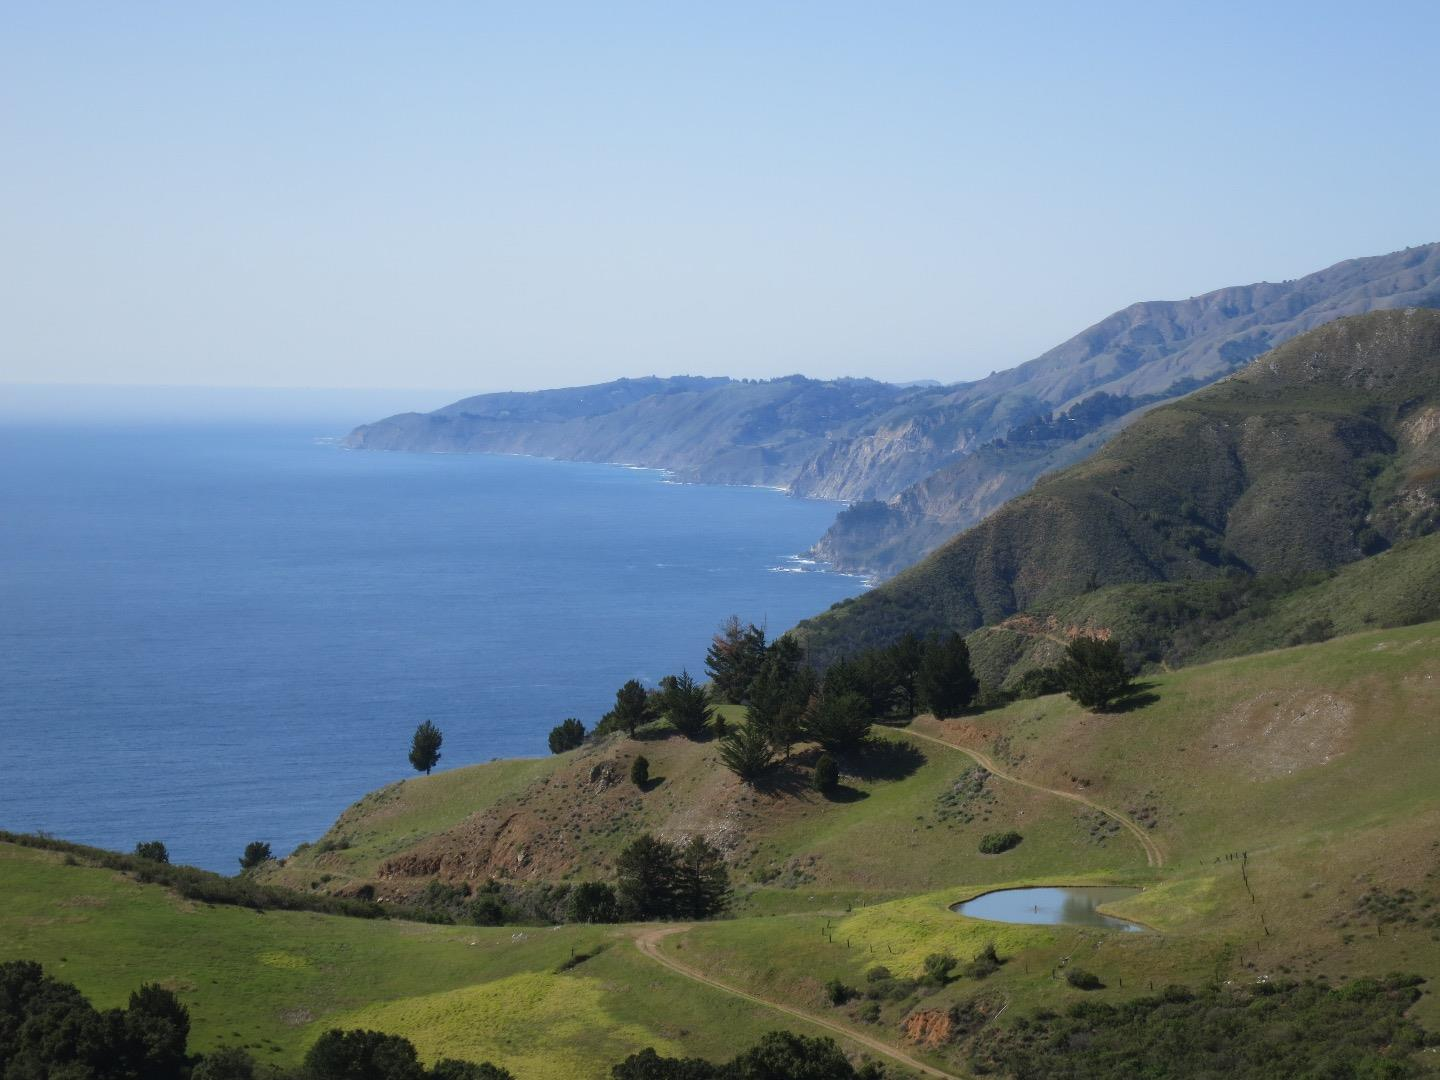 Single Family Home for Sale at Santa Lucia Ranch, Parcels B & C, Highway 1 Big Sur, California 93920 United States